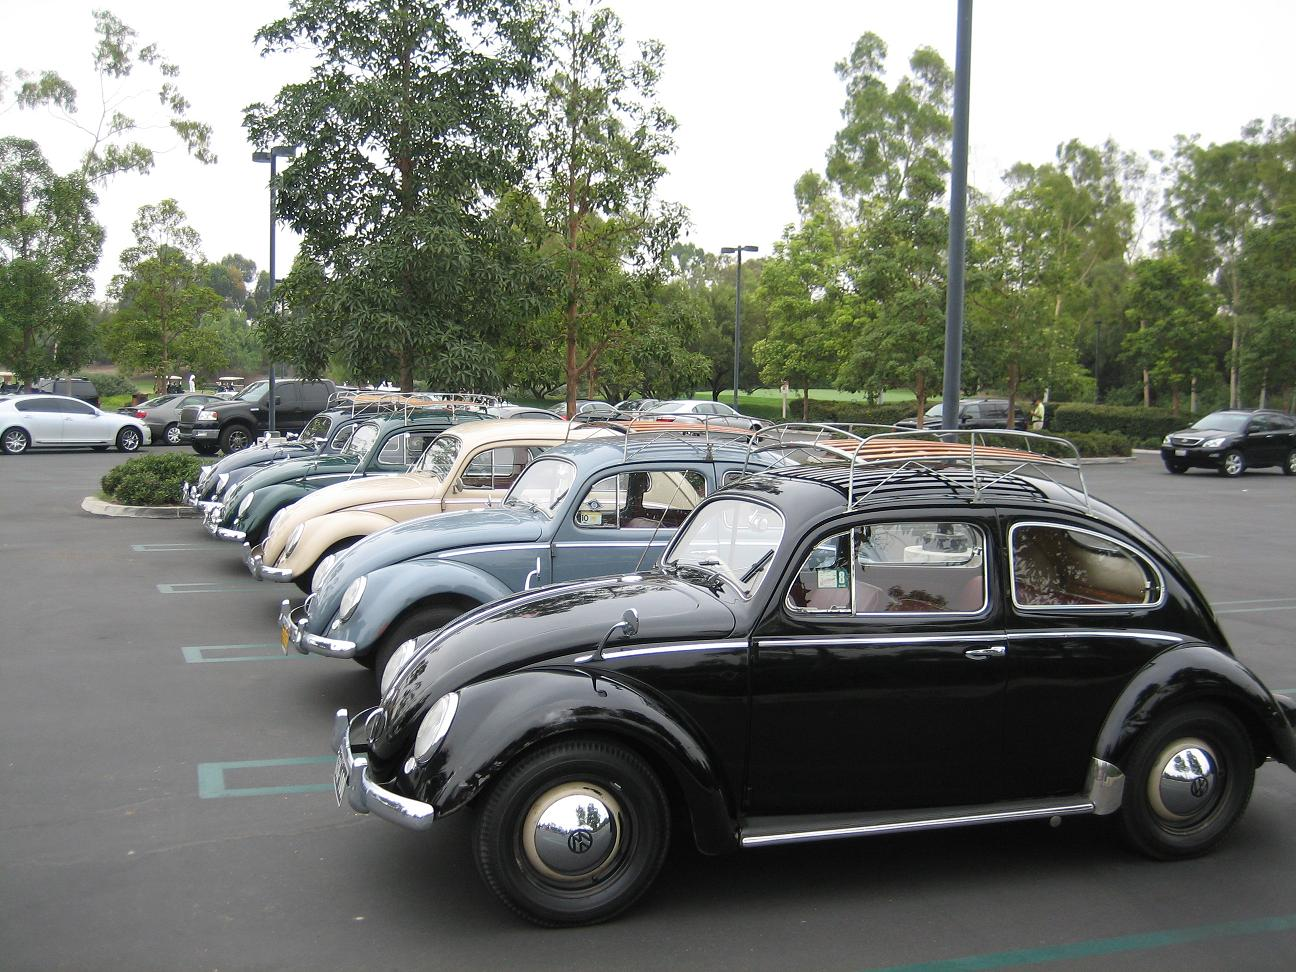 So Cal Oval gathering